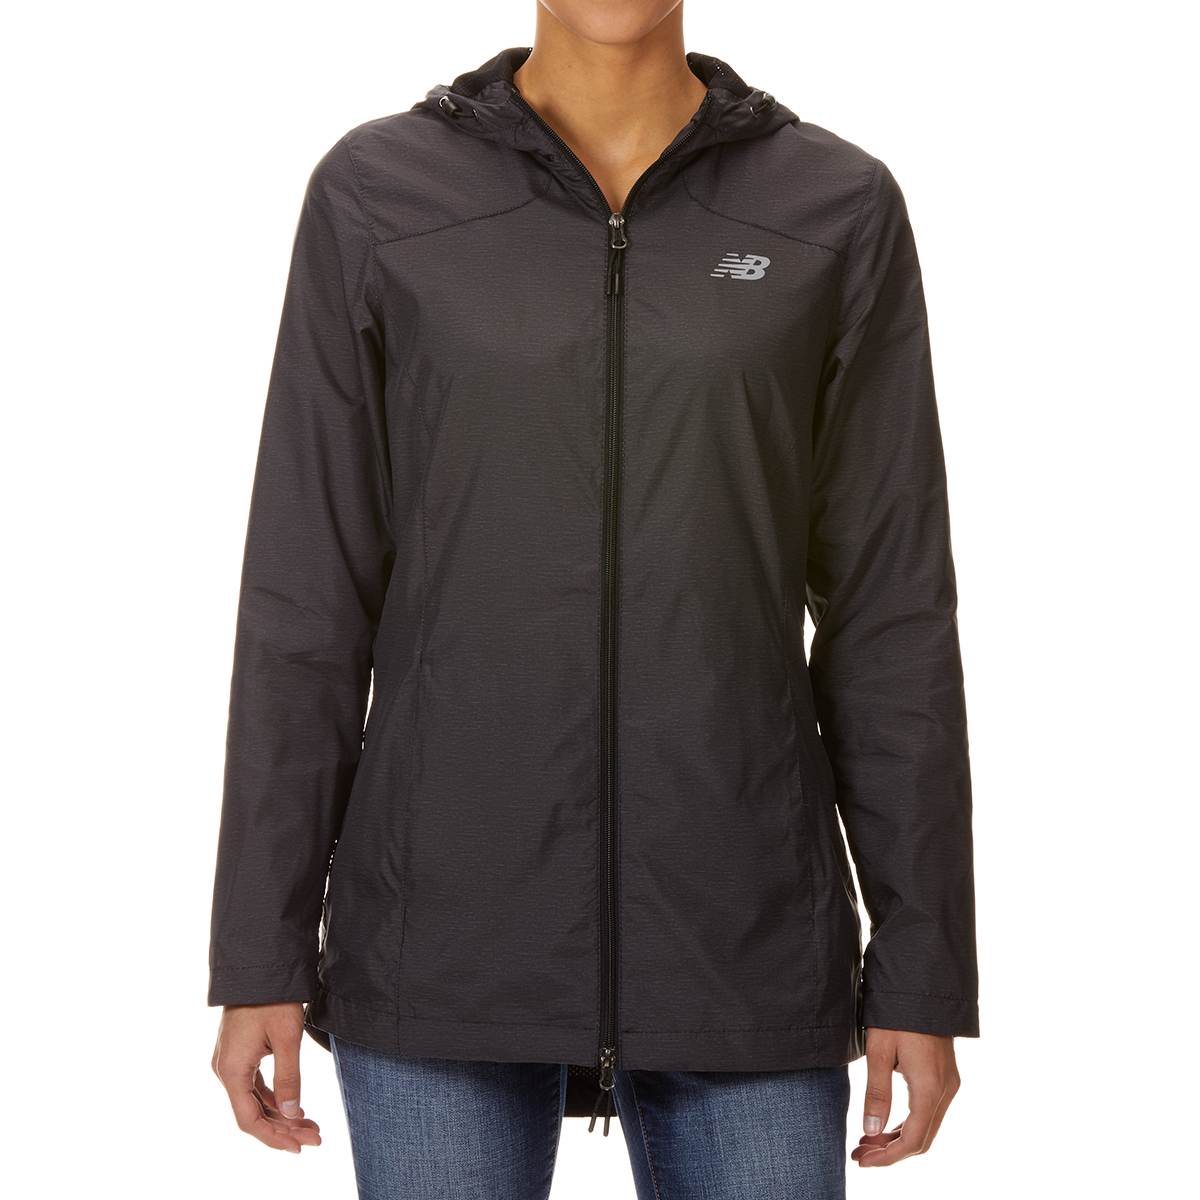 North Bay Apparel Women's Cire Hooded Jacket - Black, L